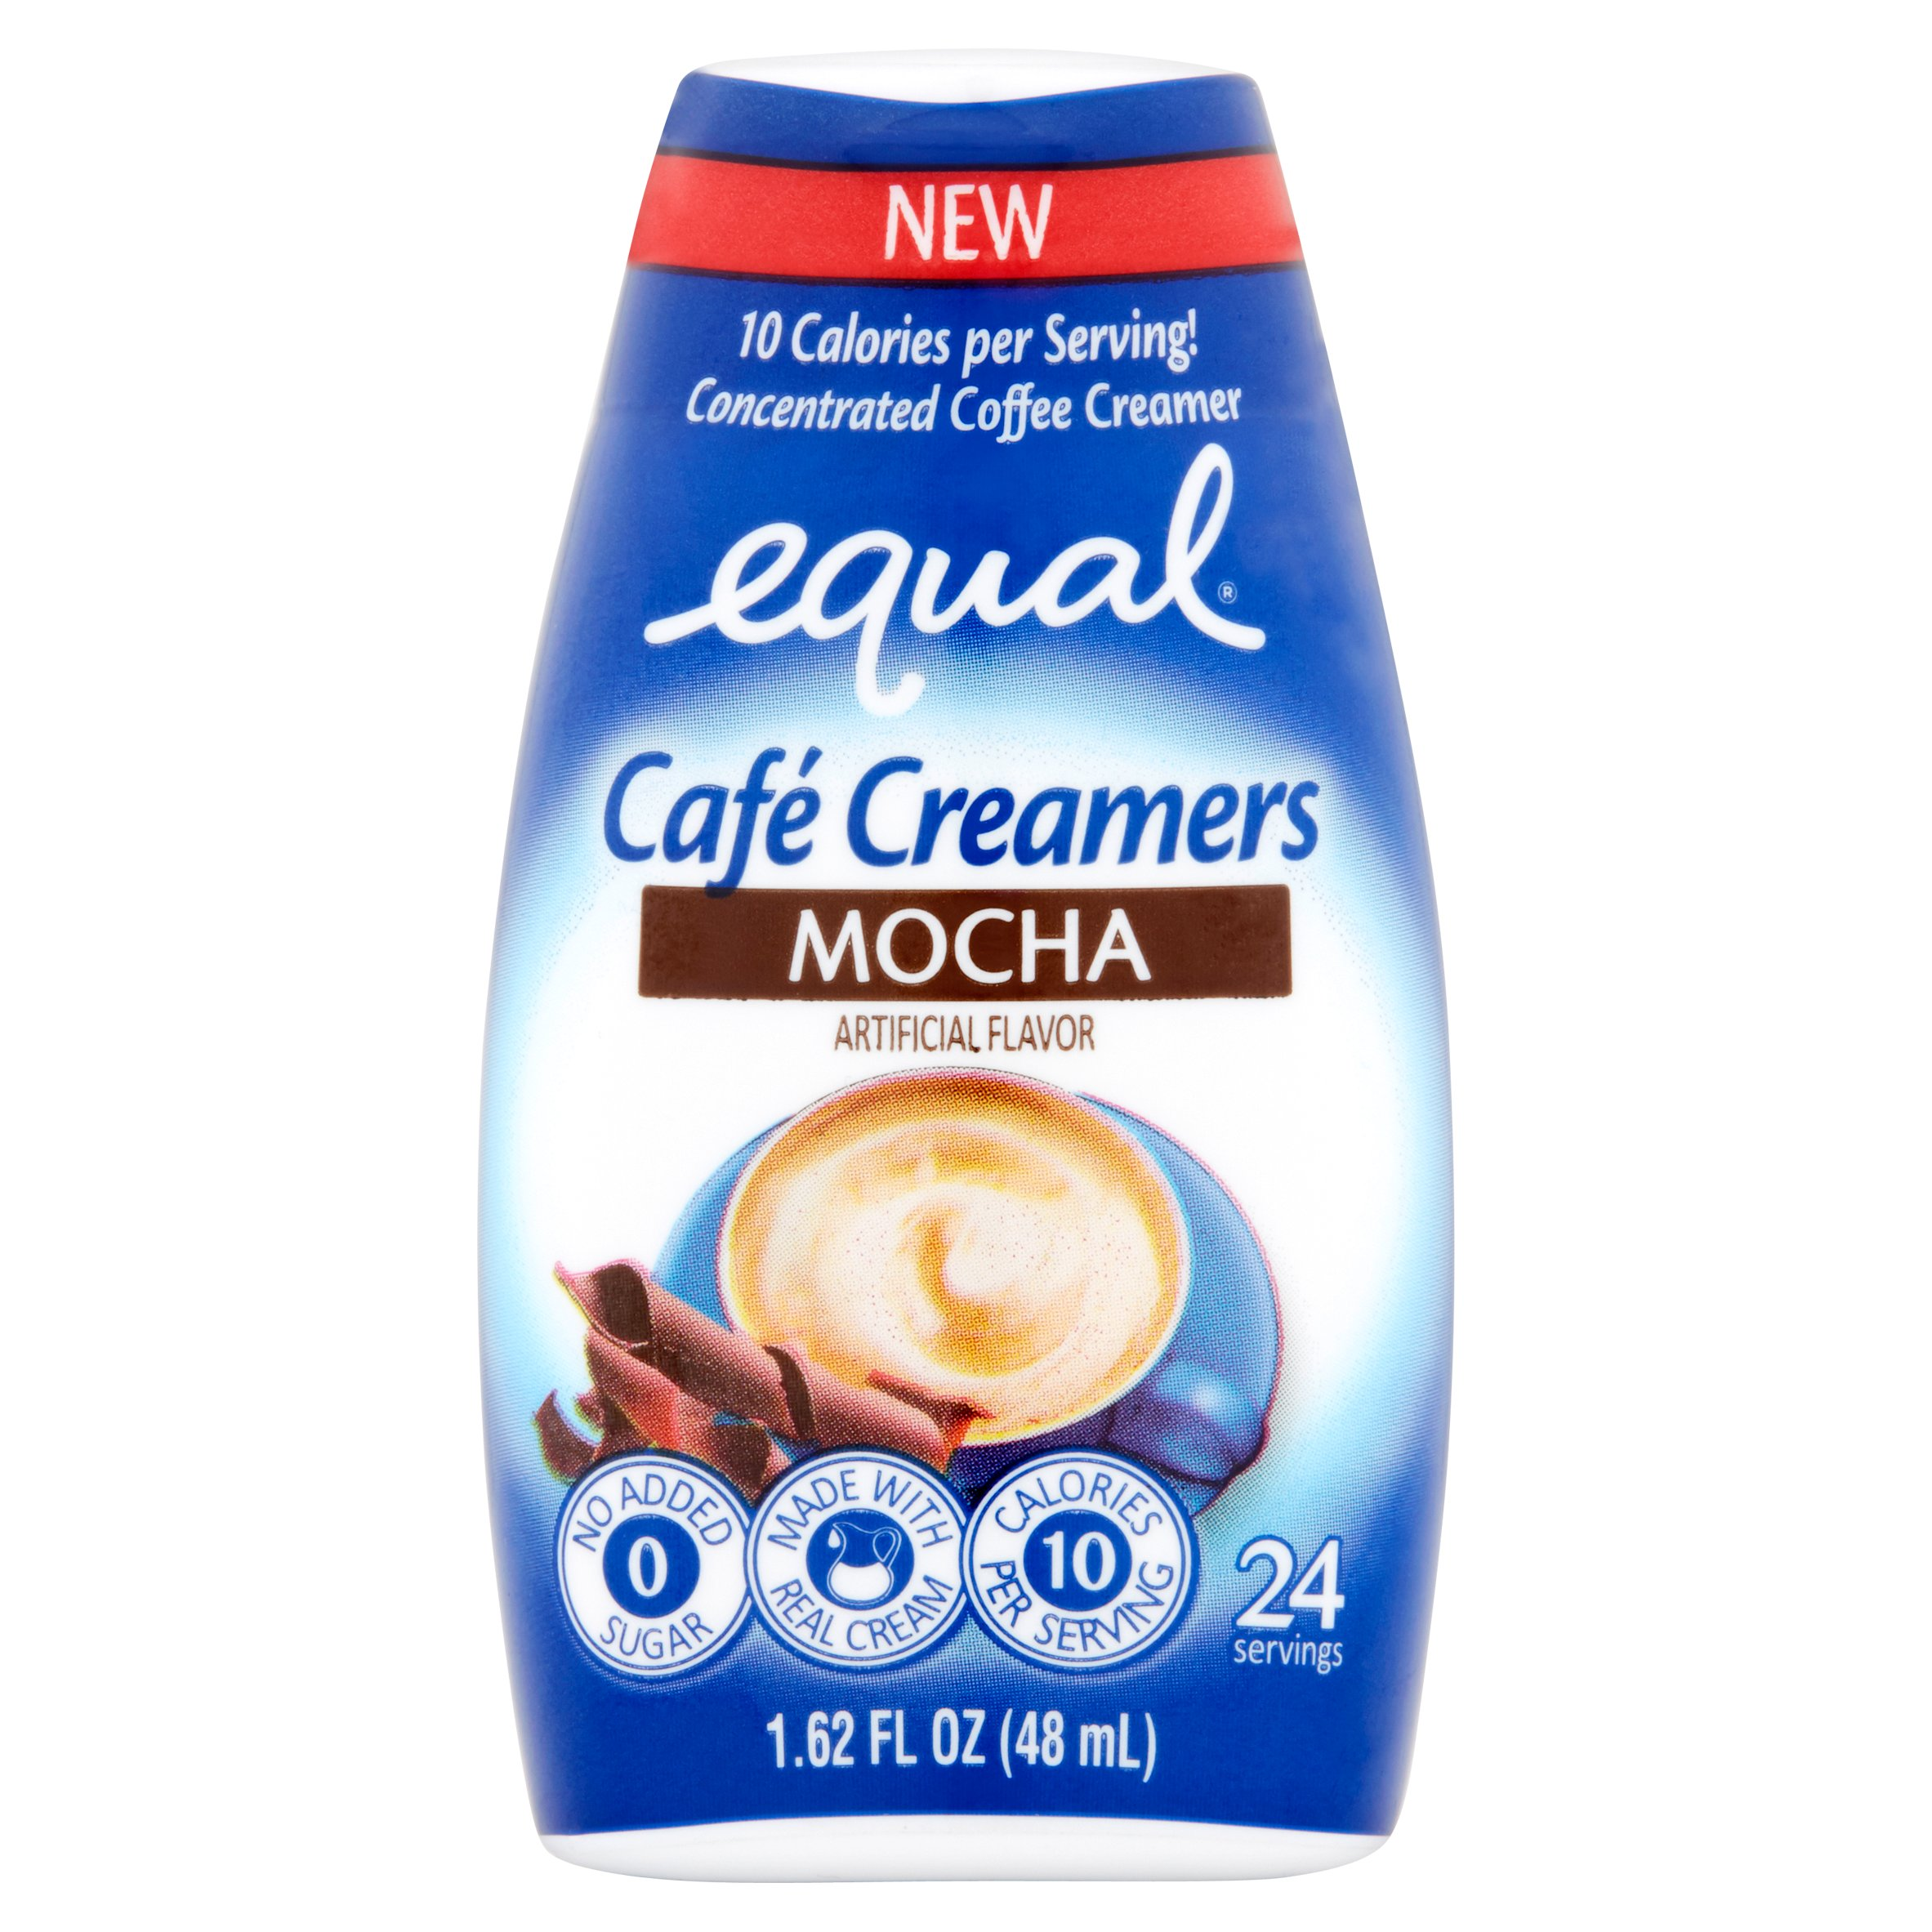 (6 Pack) Equal Cafe Creamers Mocha, Low-Calorie Coffee Creamer, 1.62 Fl Oz